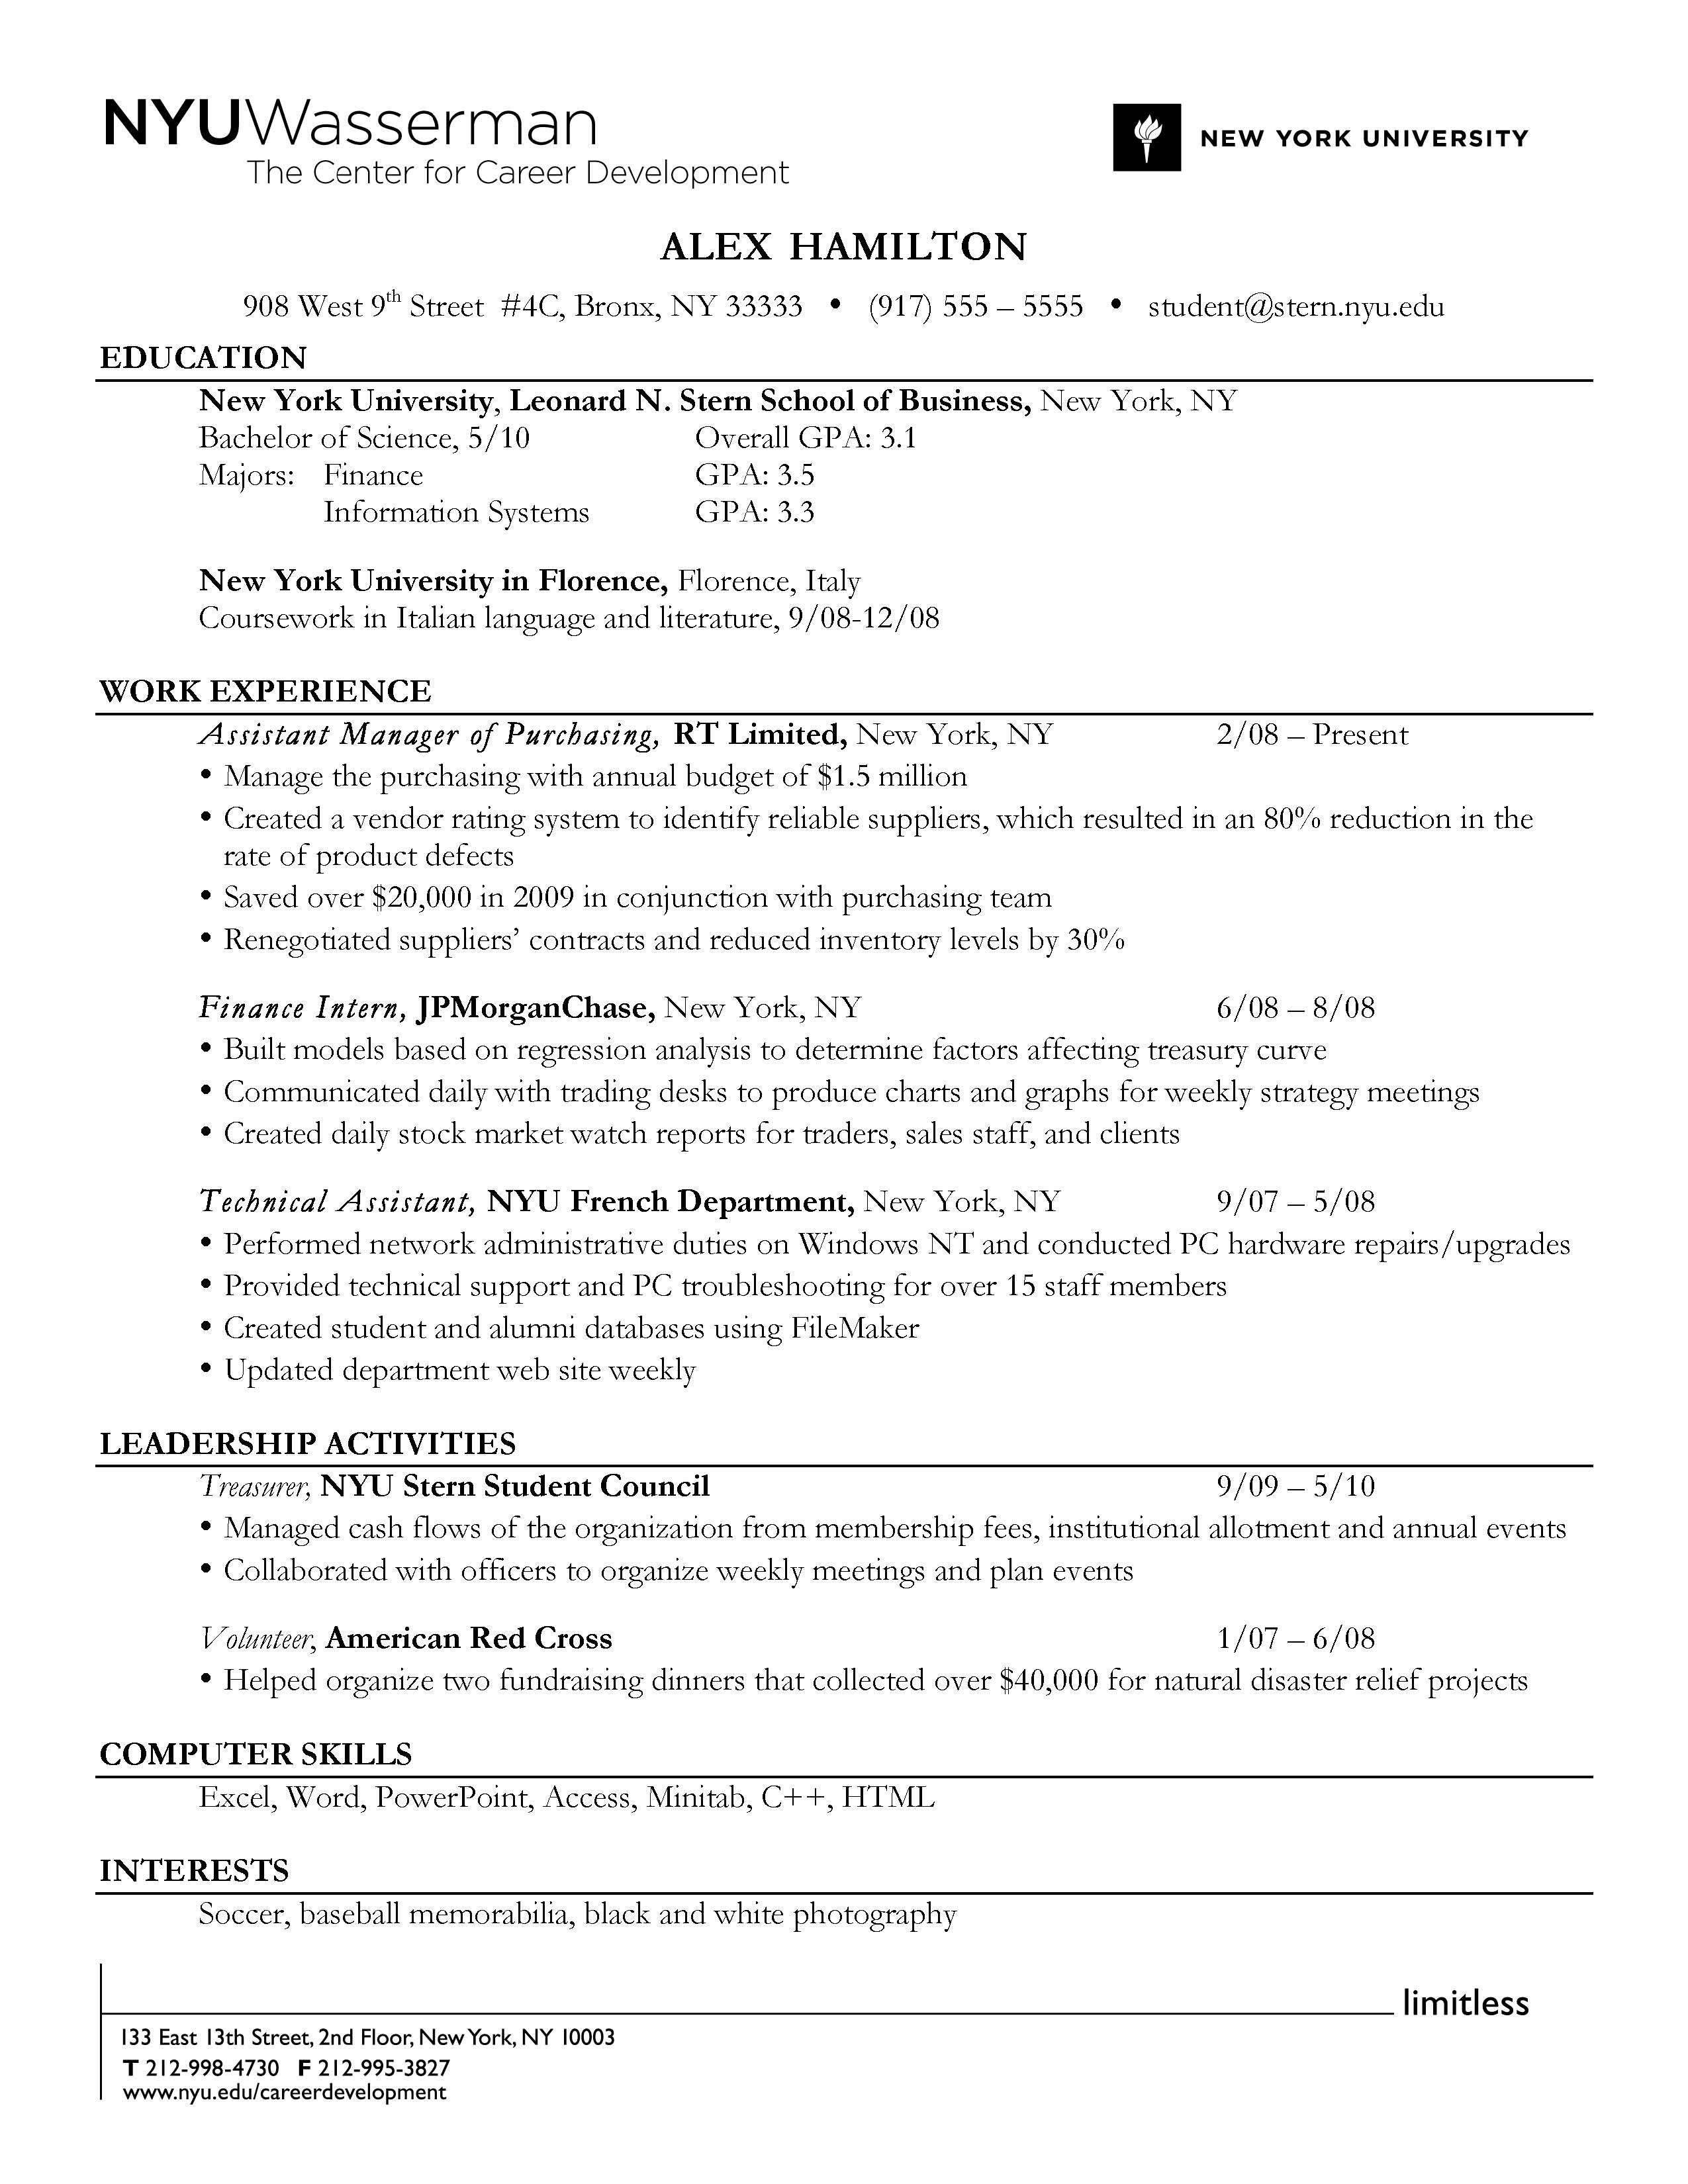 How To Format Experience On A Resume Do Use A Reverse Chronological Order Resume Format To Highlight